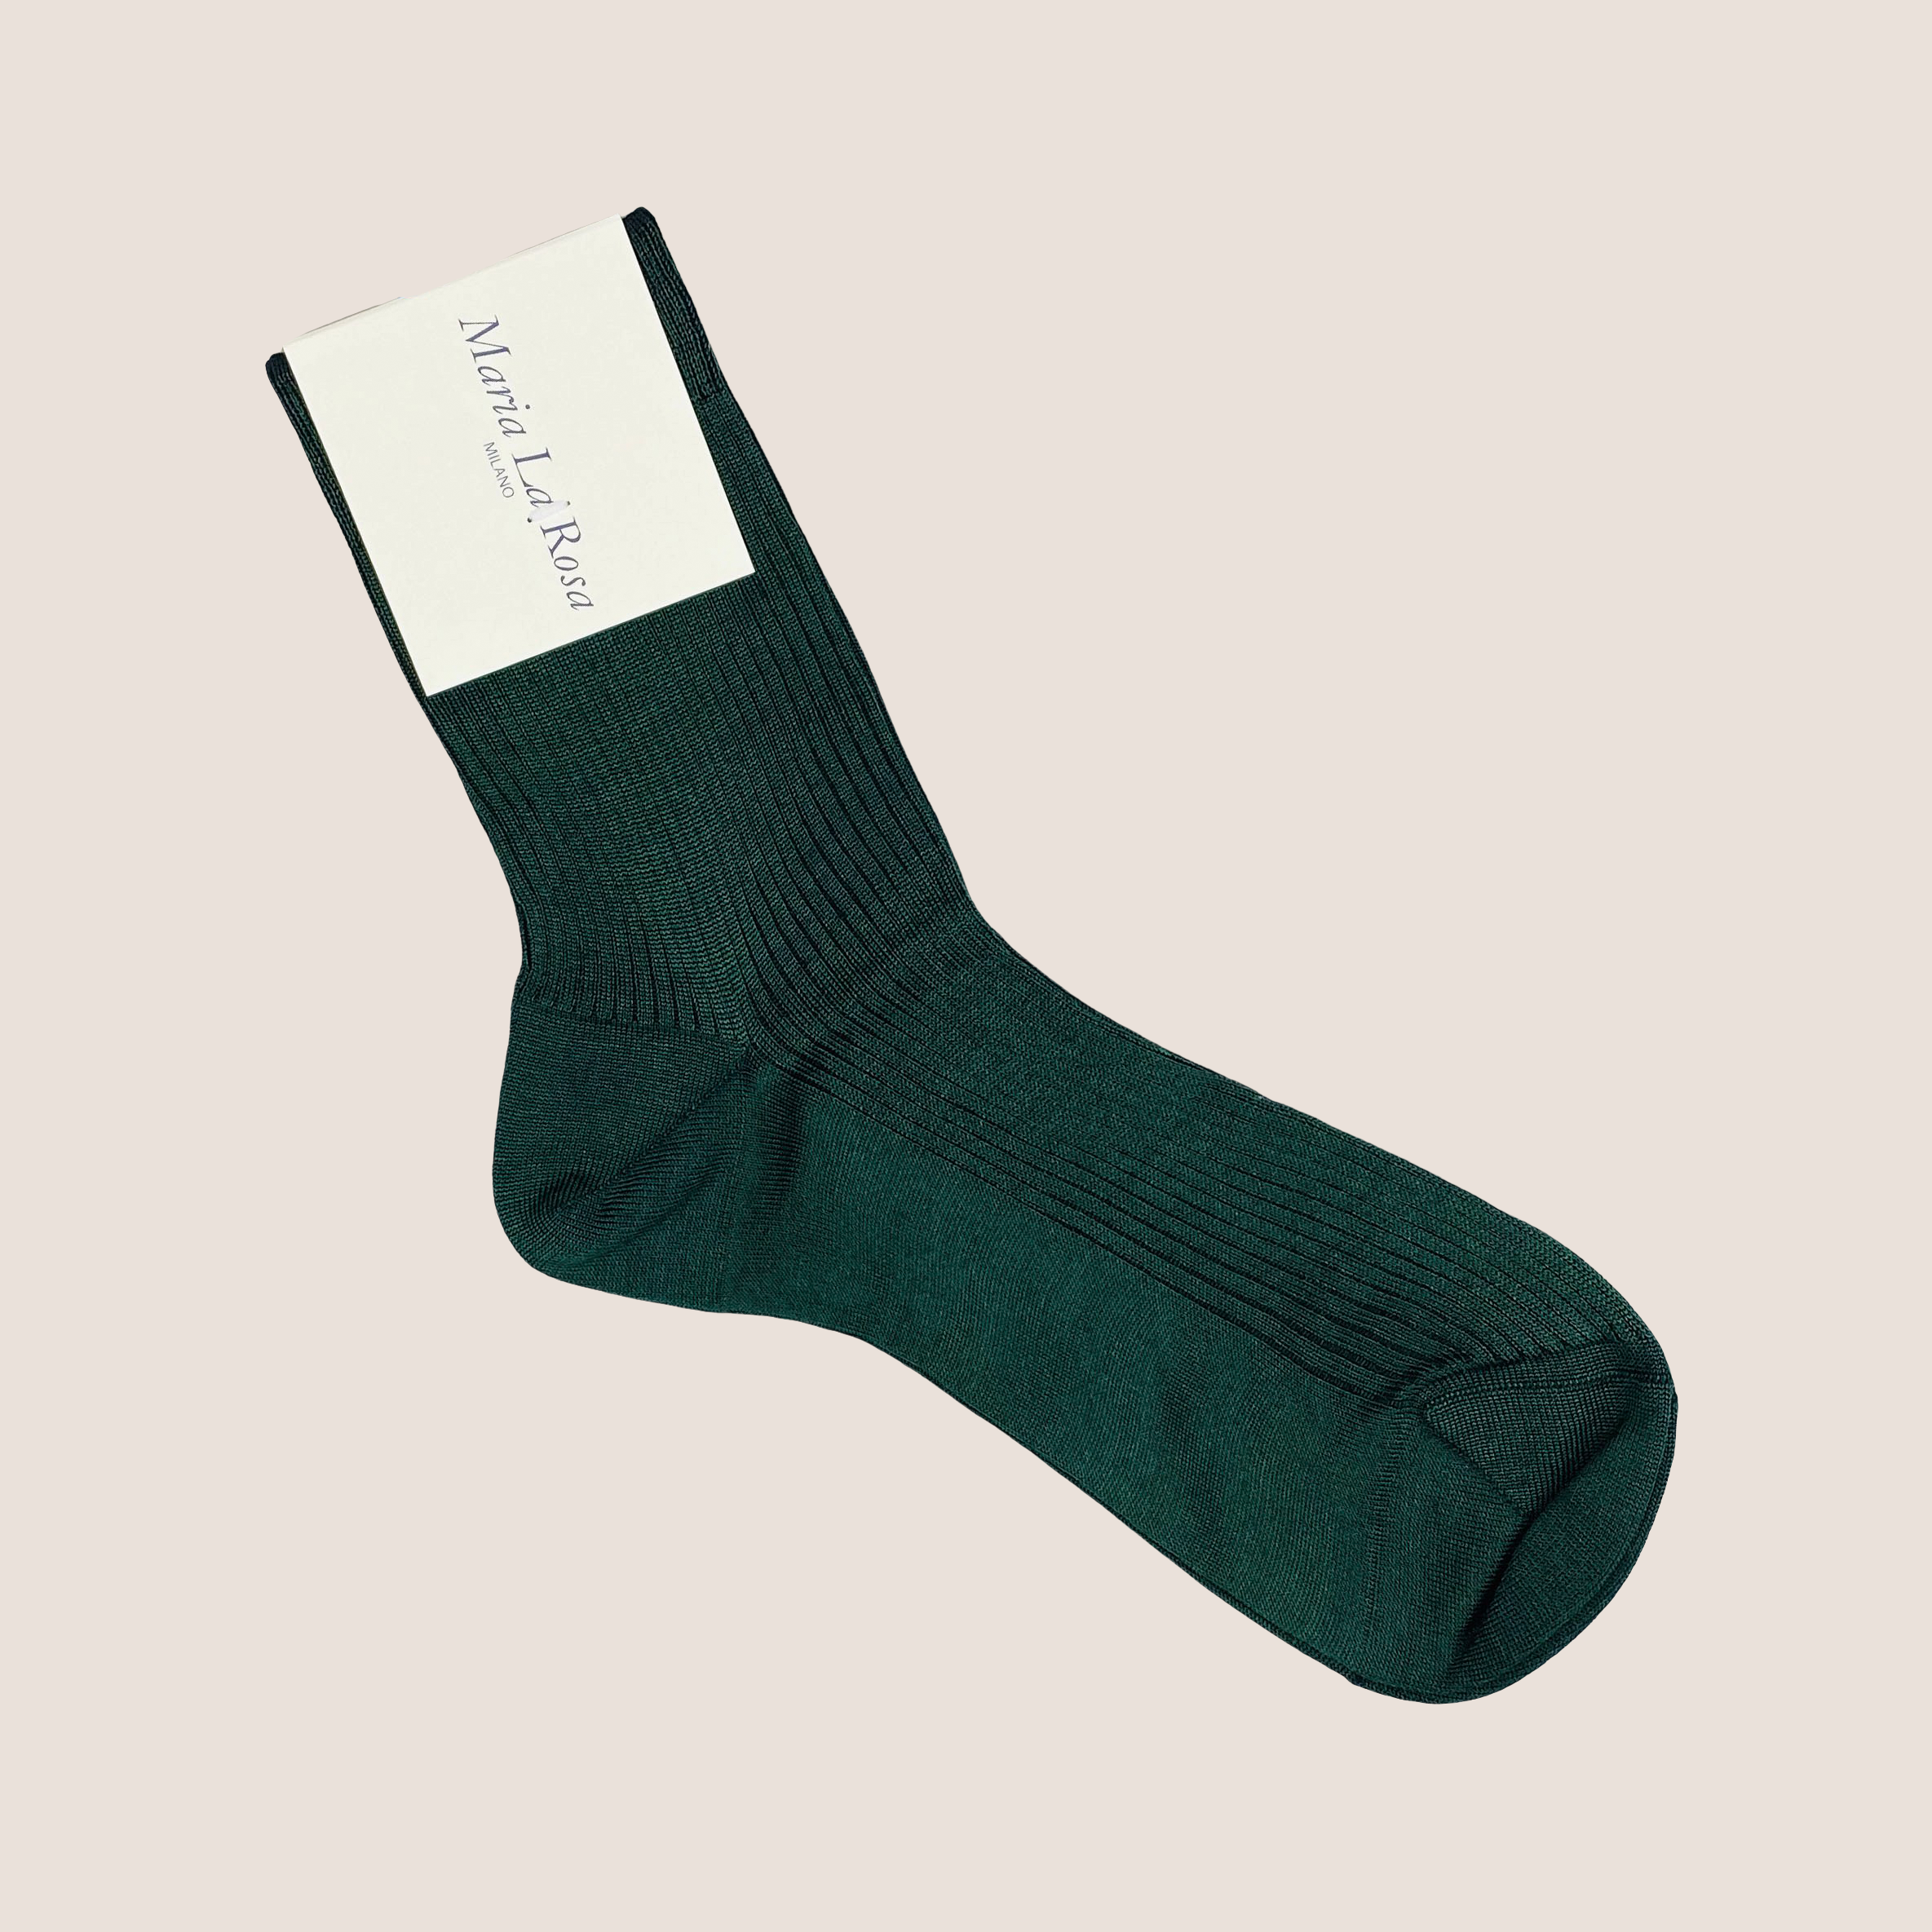 One Rib Ladies socks